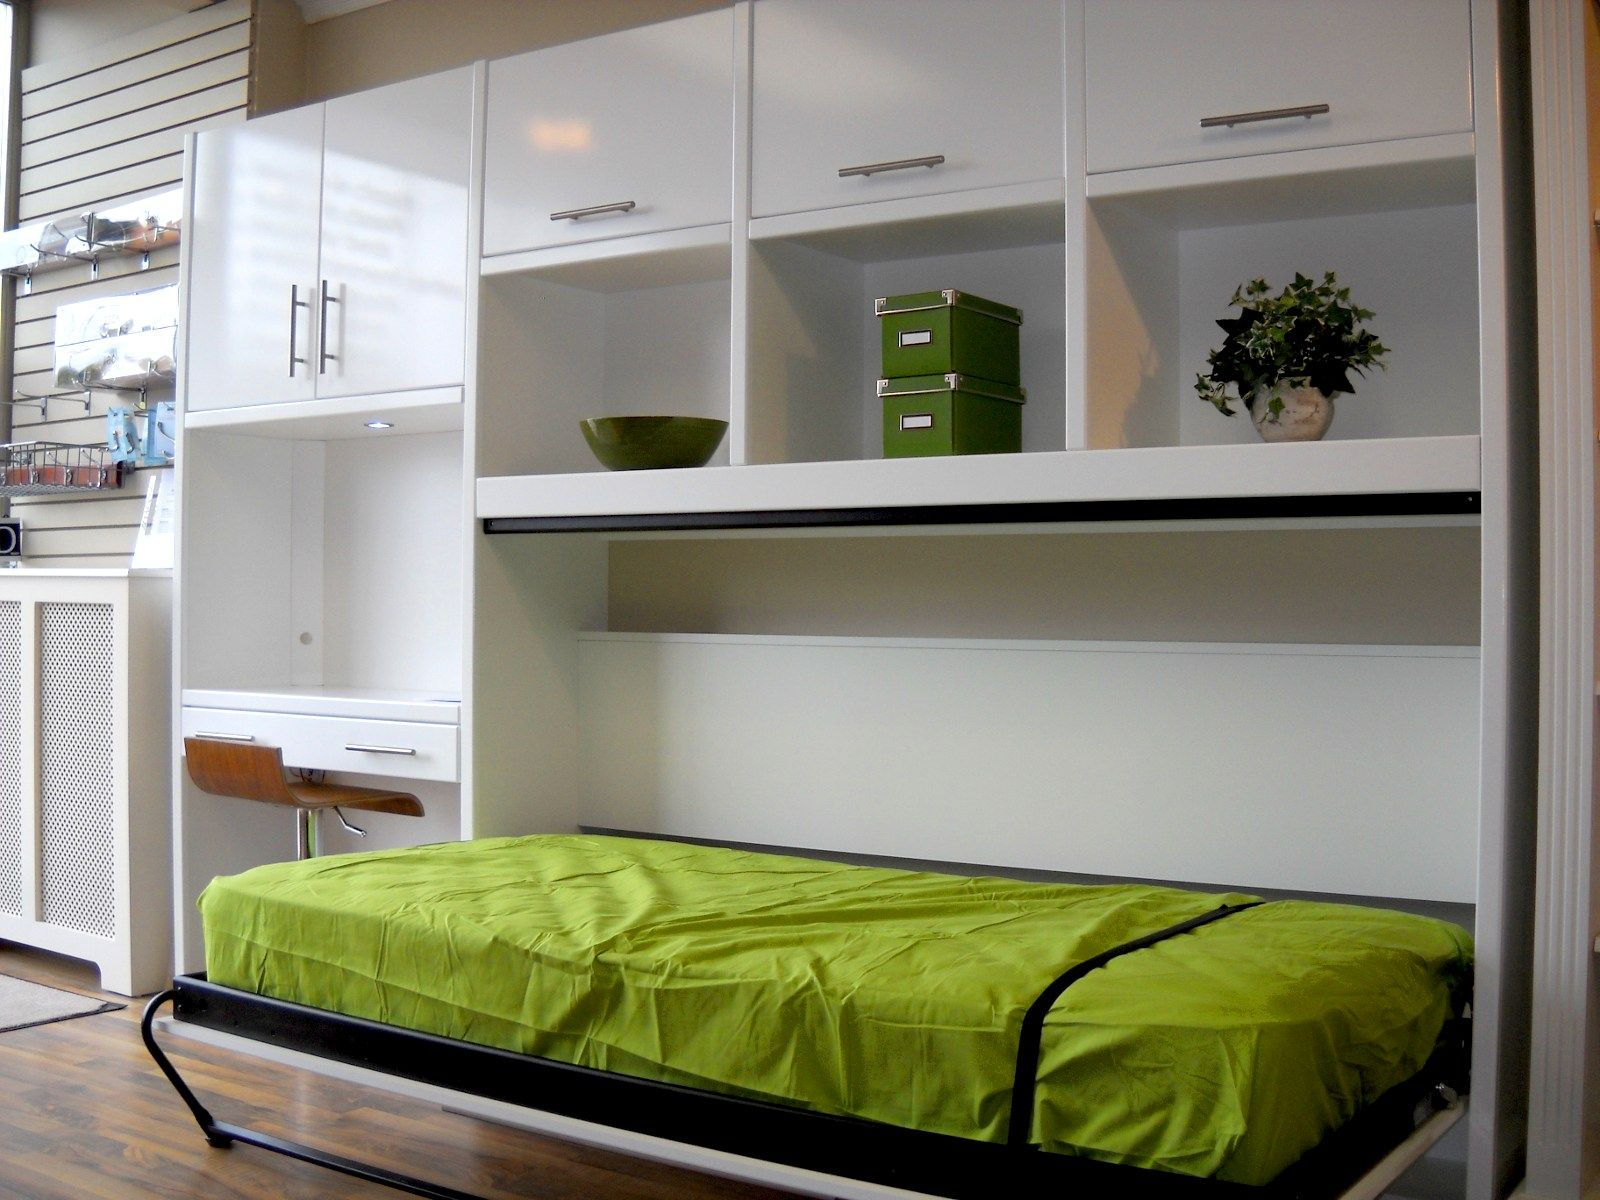 Bedroom. Glossy White Murphy Bed With Green Quilt On The